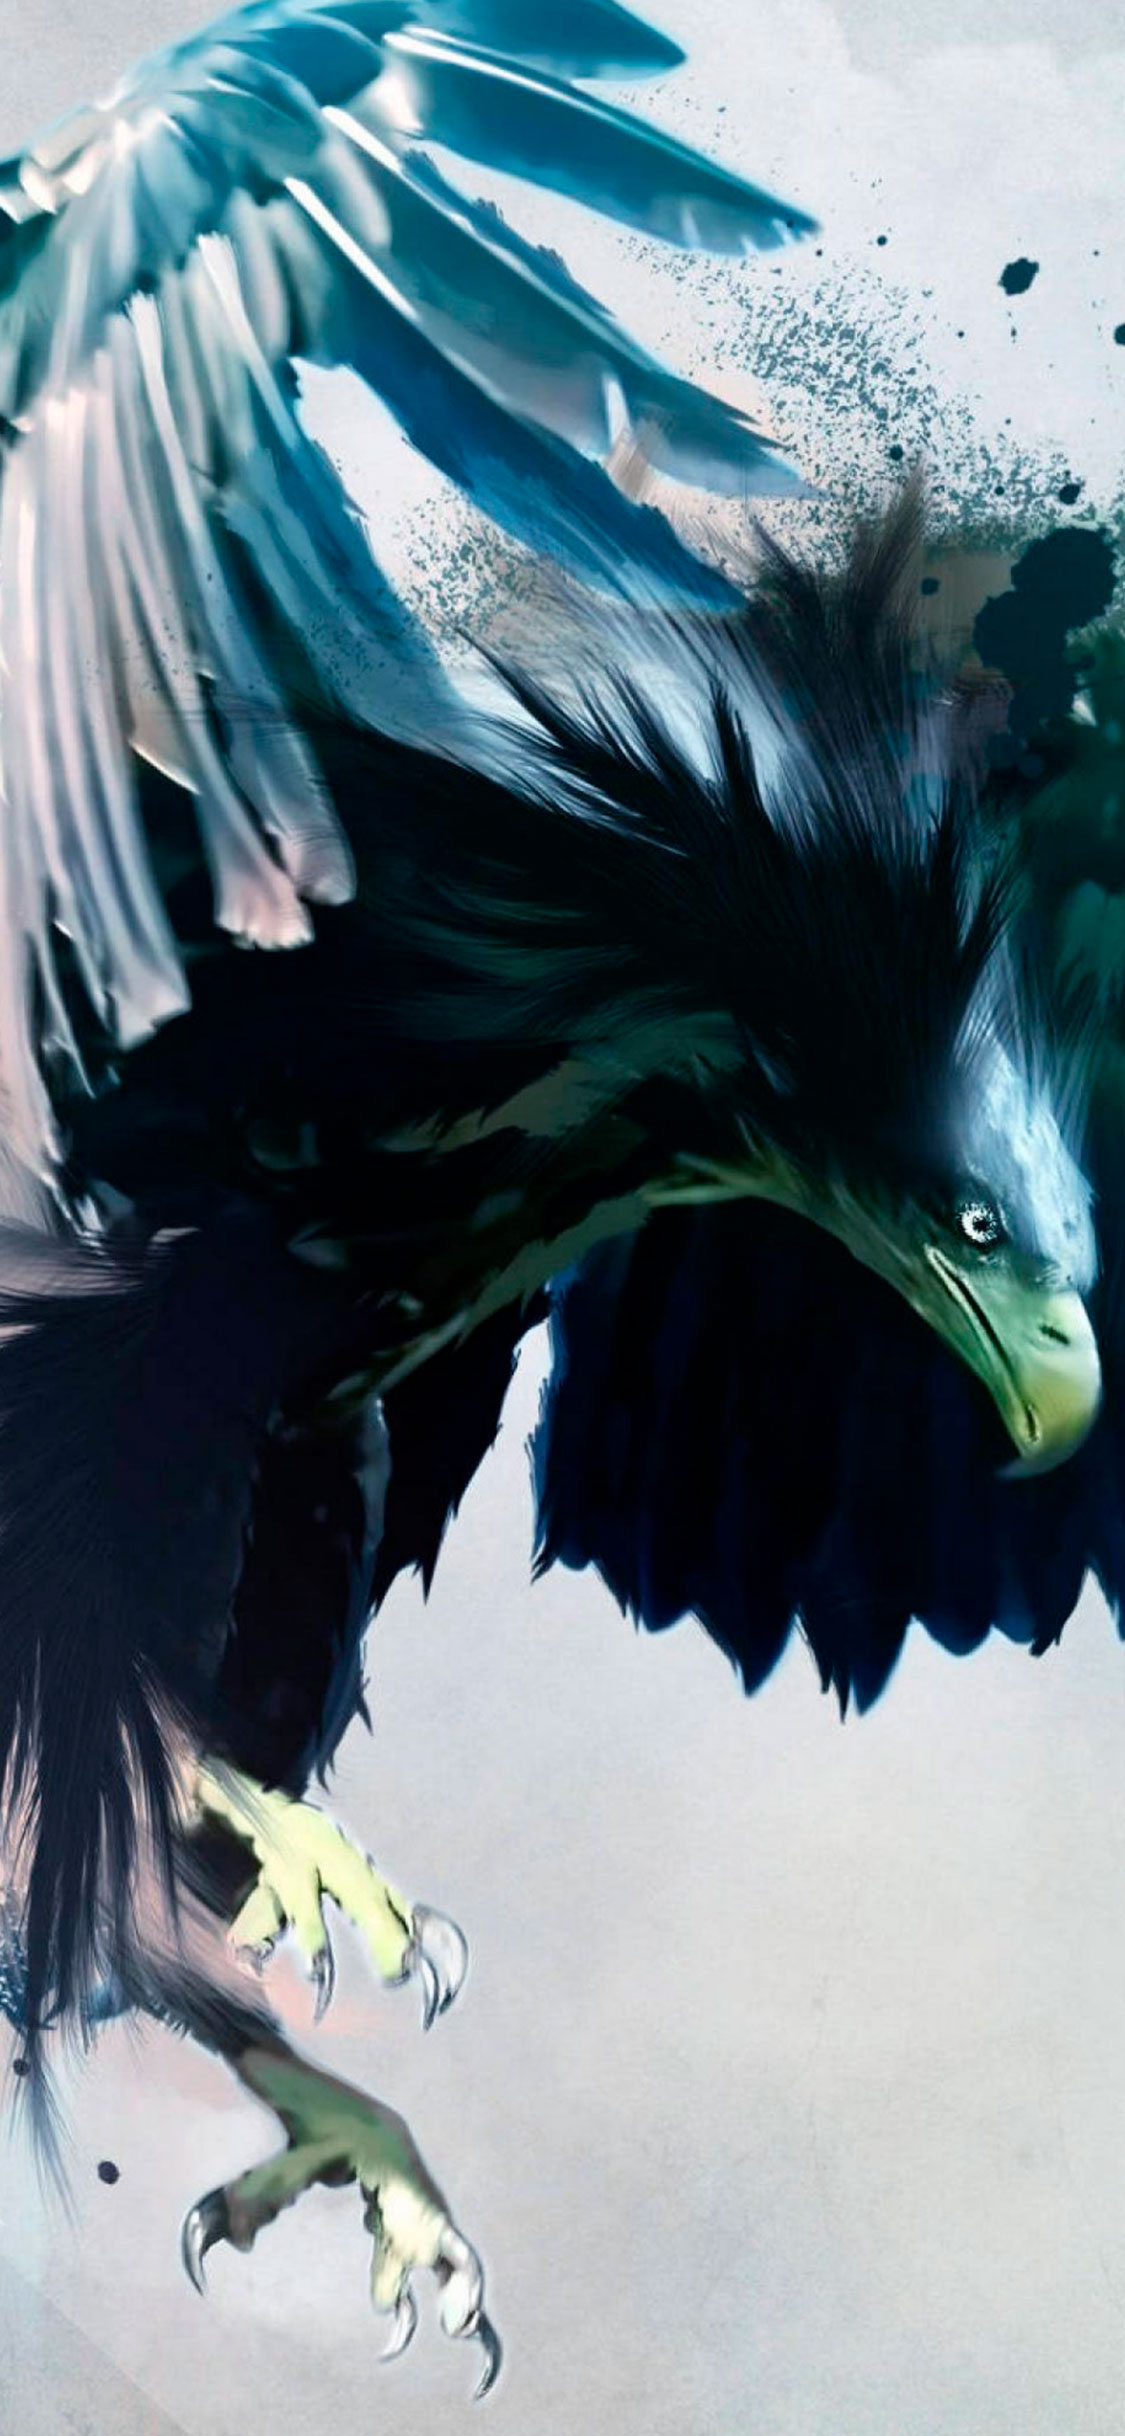 iPhone wallpaper eagle 3 Fonds d'écran iPhone du 07/06/2018